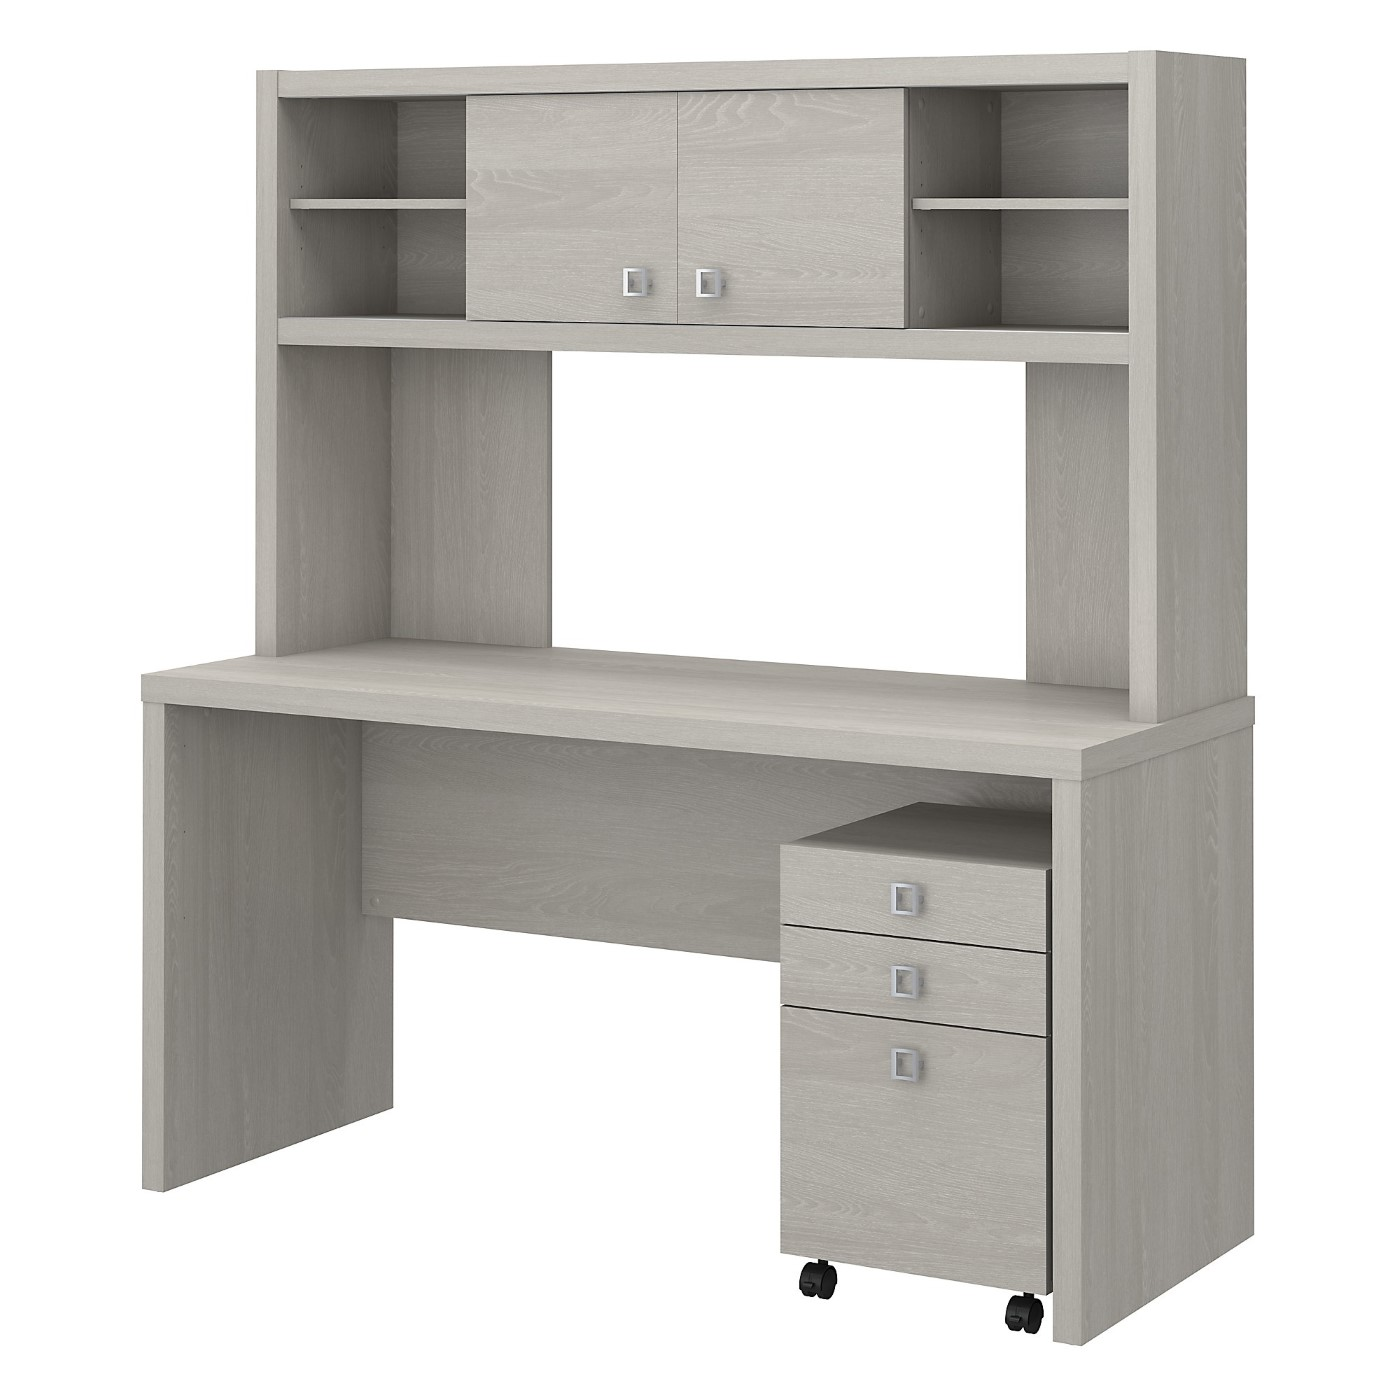 </b></font><b>The kathy ireland� Echo Credenza Desk with Hutch and Mobile File Cabinet is Sustainable Eco Friendly Furniture. Includes Free Shipping! 30H x 72L x 72W</font>. <p>RATING:&#11088;&#11088;&#11088;</b></font></b>